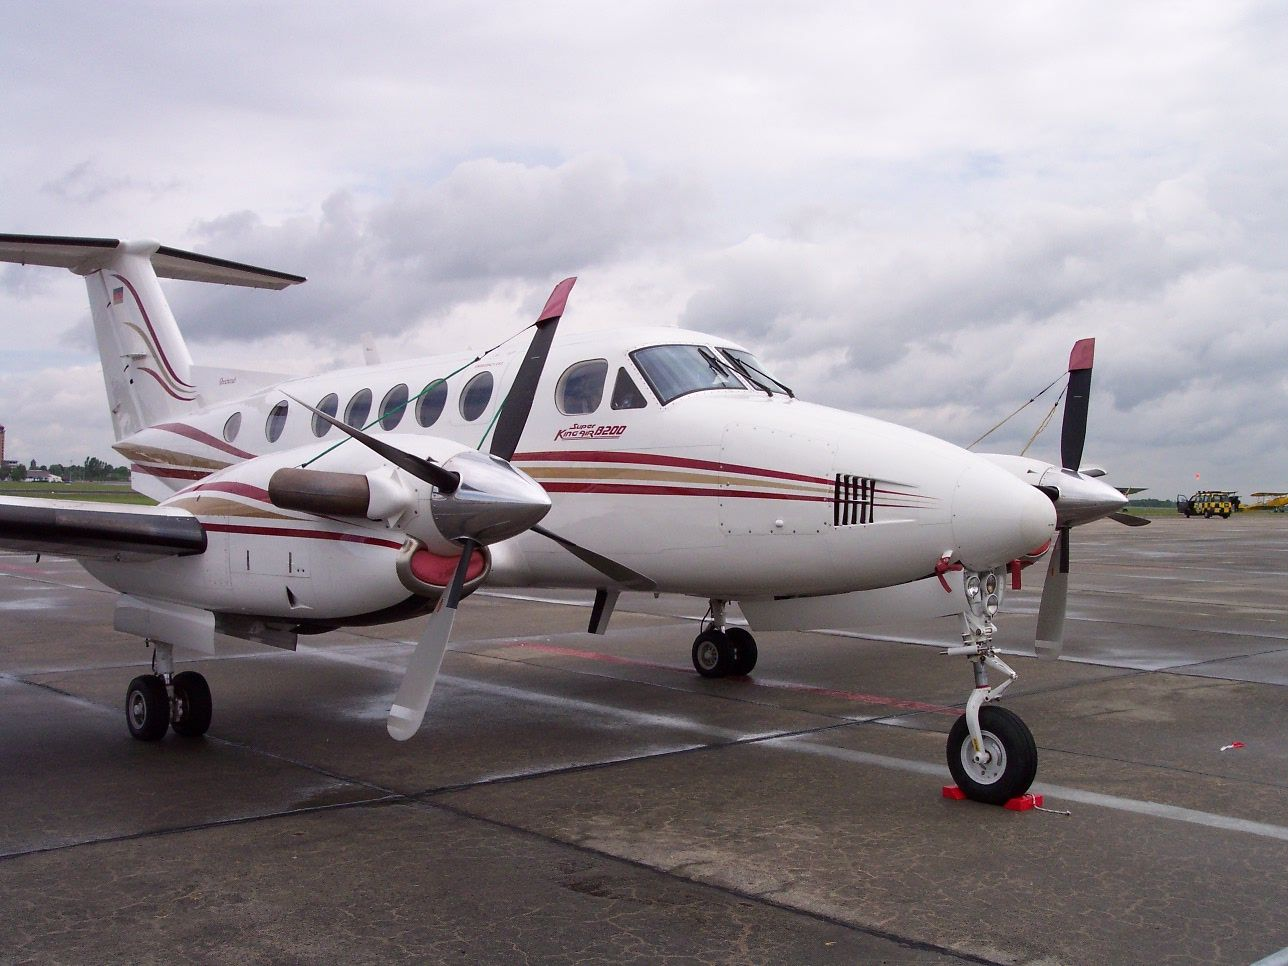 plane propeller for sale with File Beechcraft Super King Air B200 Vr on Default likewise Airplane Models Txl furthermore Cessna 195 in addition Ces Drone Autonome Capable De Transporter Une Personne 7816 together with Saab 340 Turboprop.